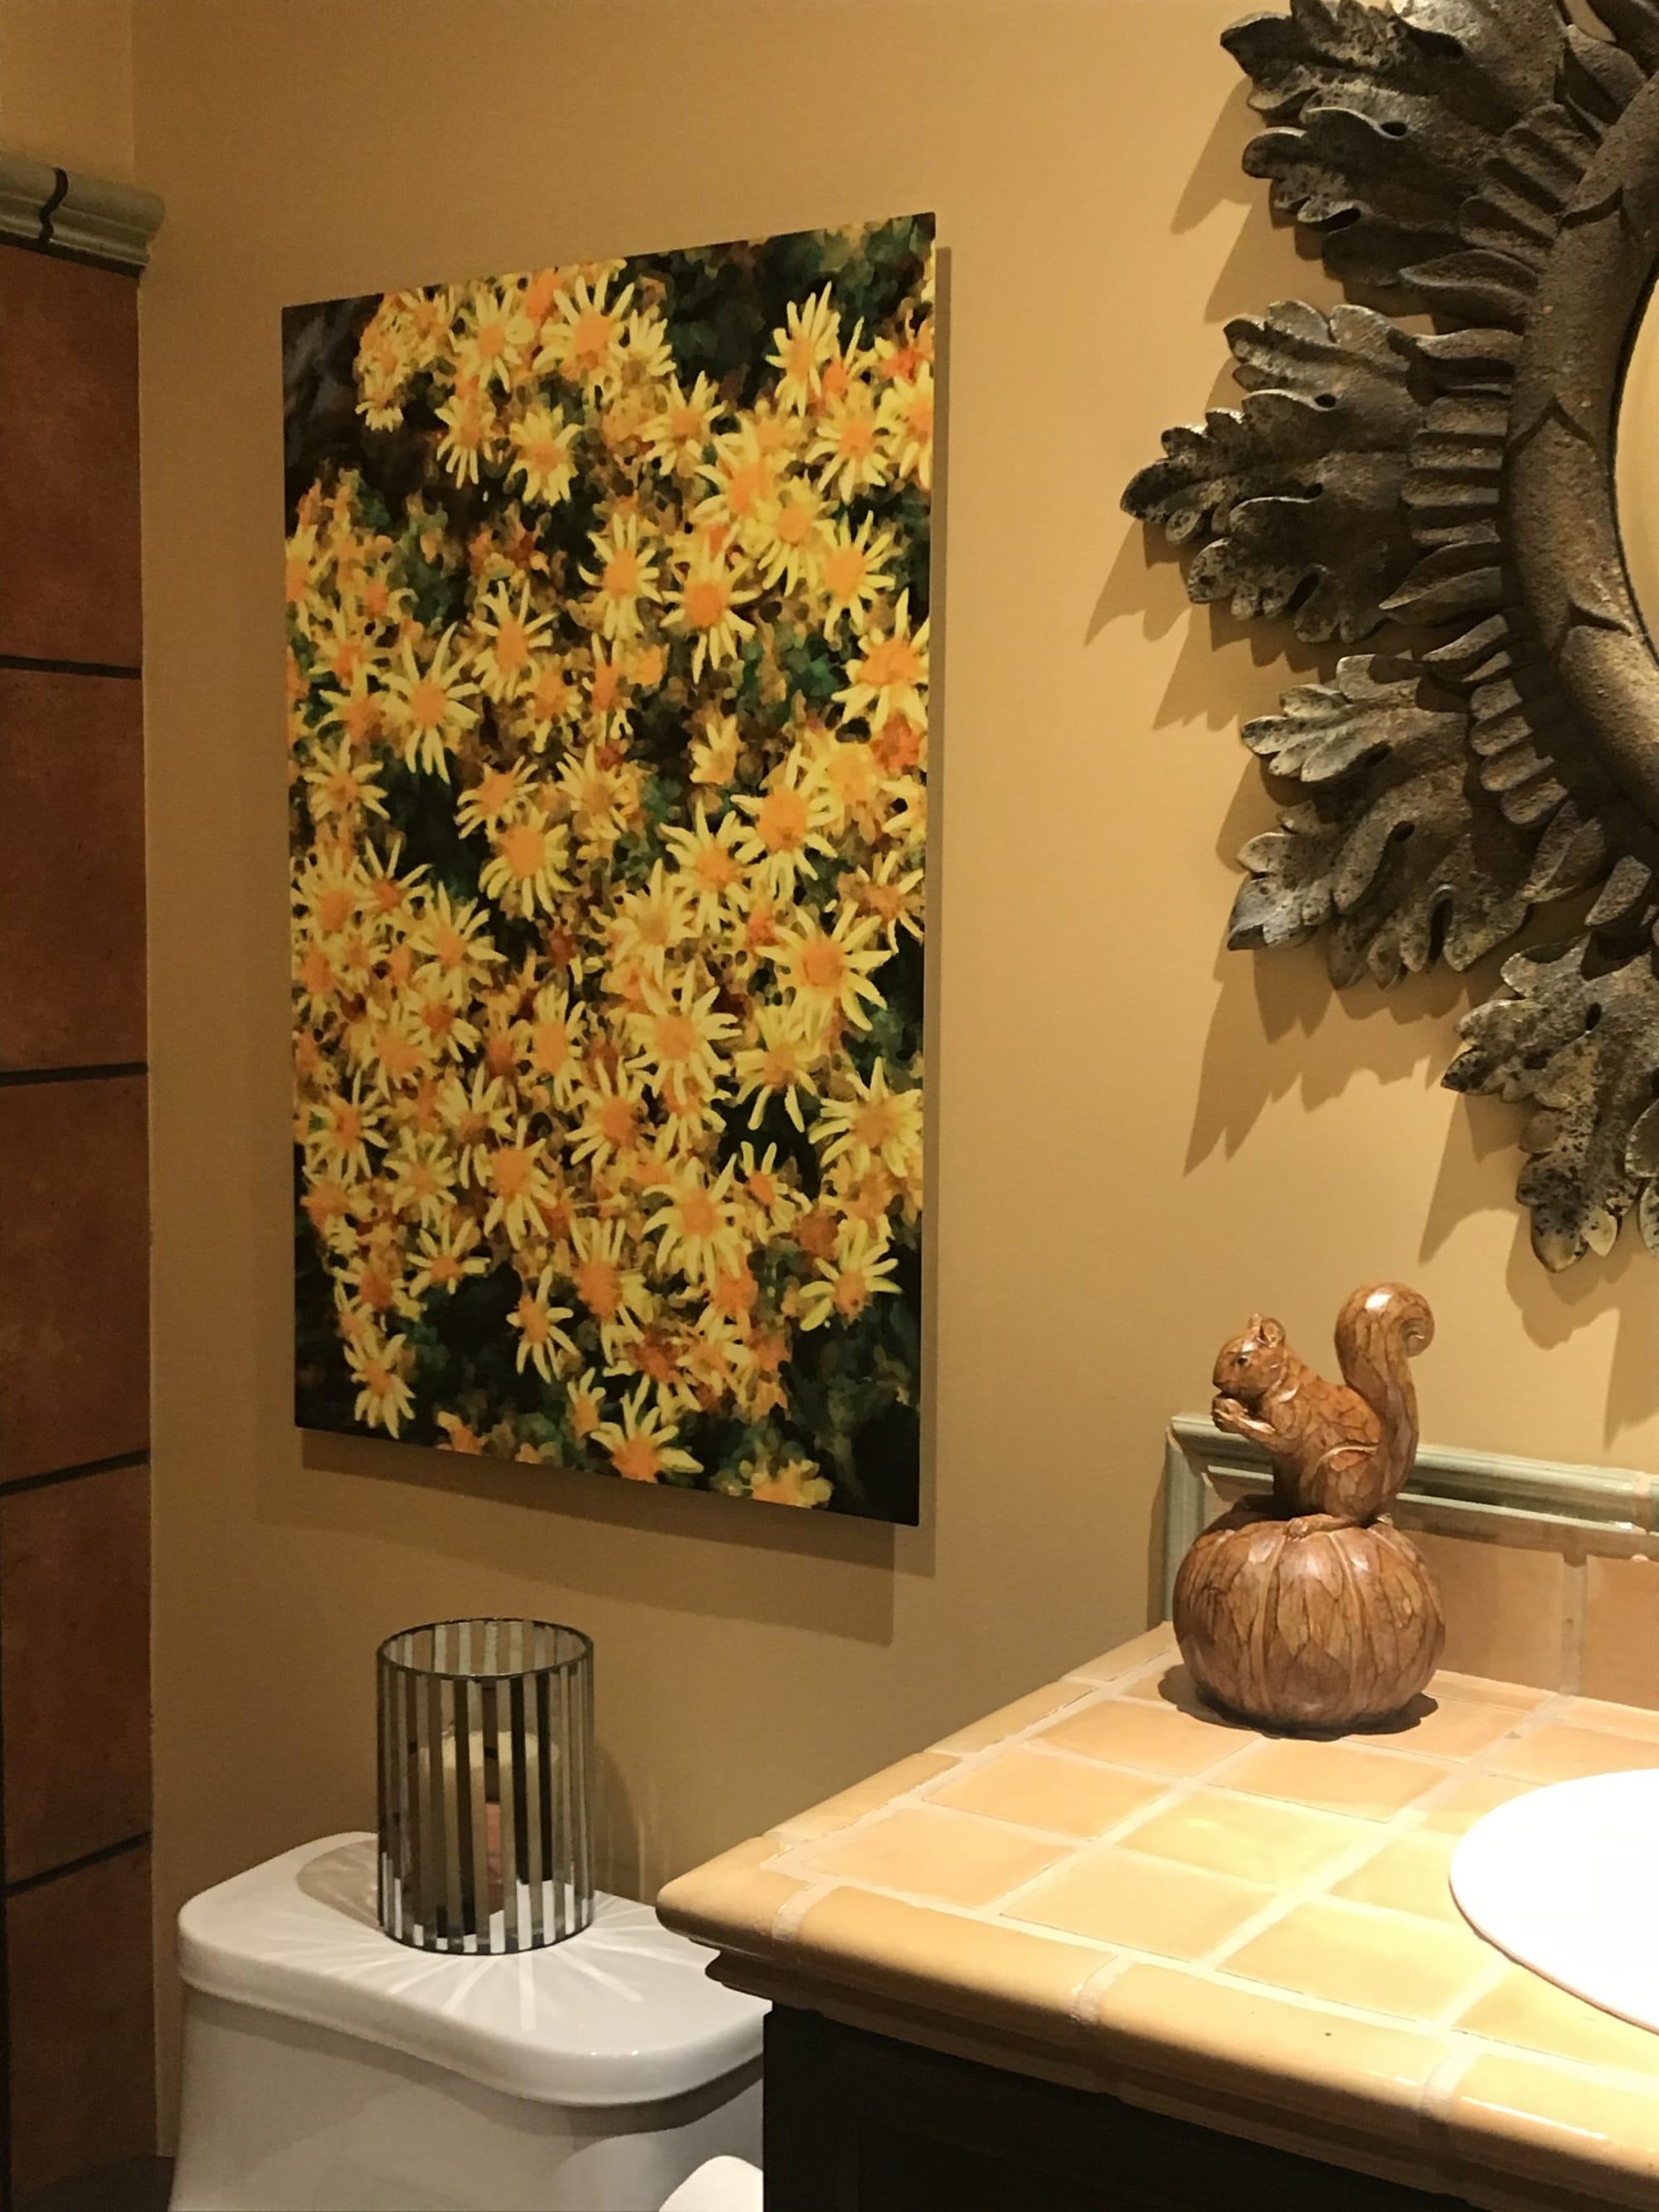 Yellow and white daisy flower painting